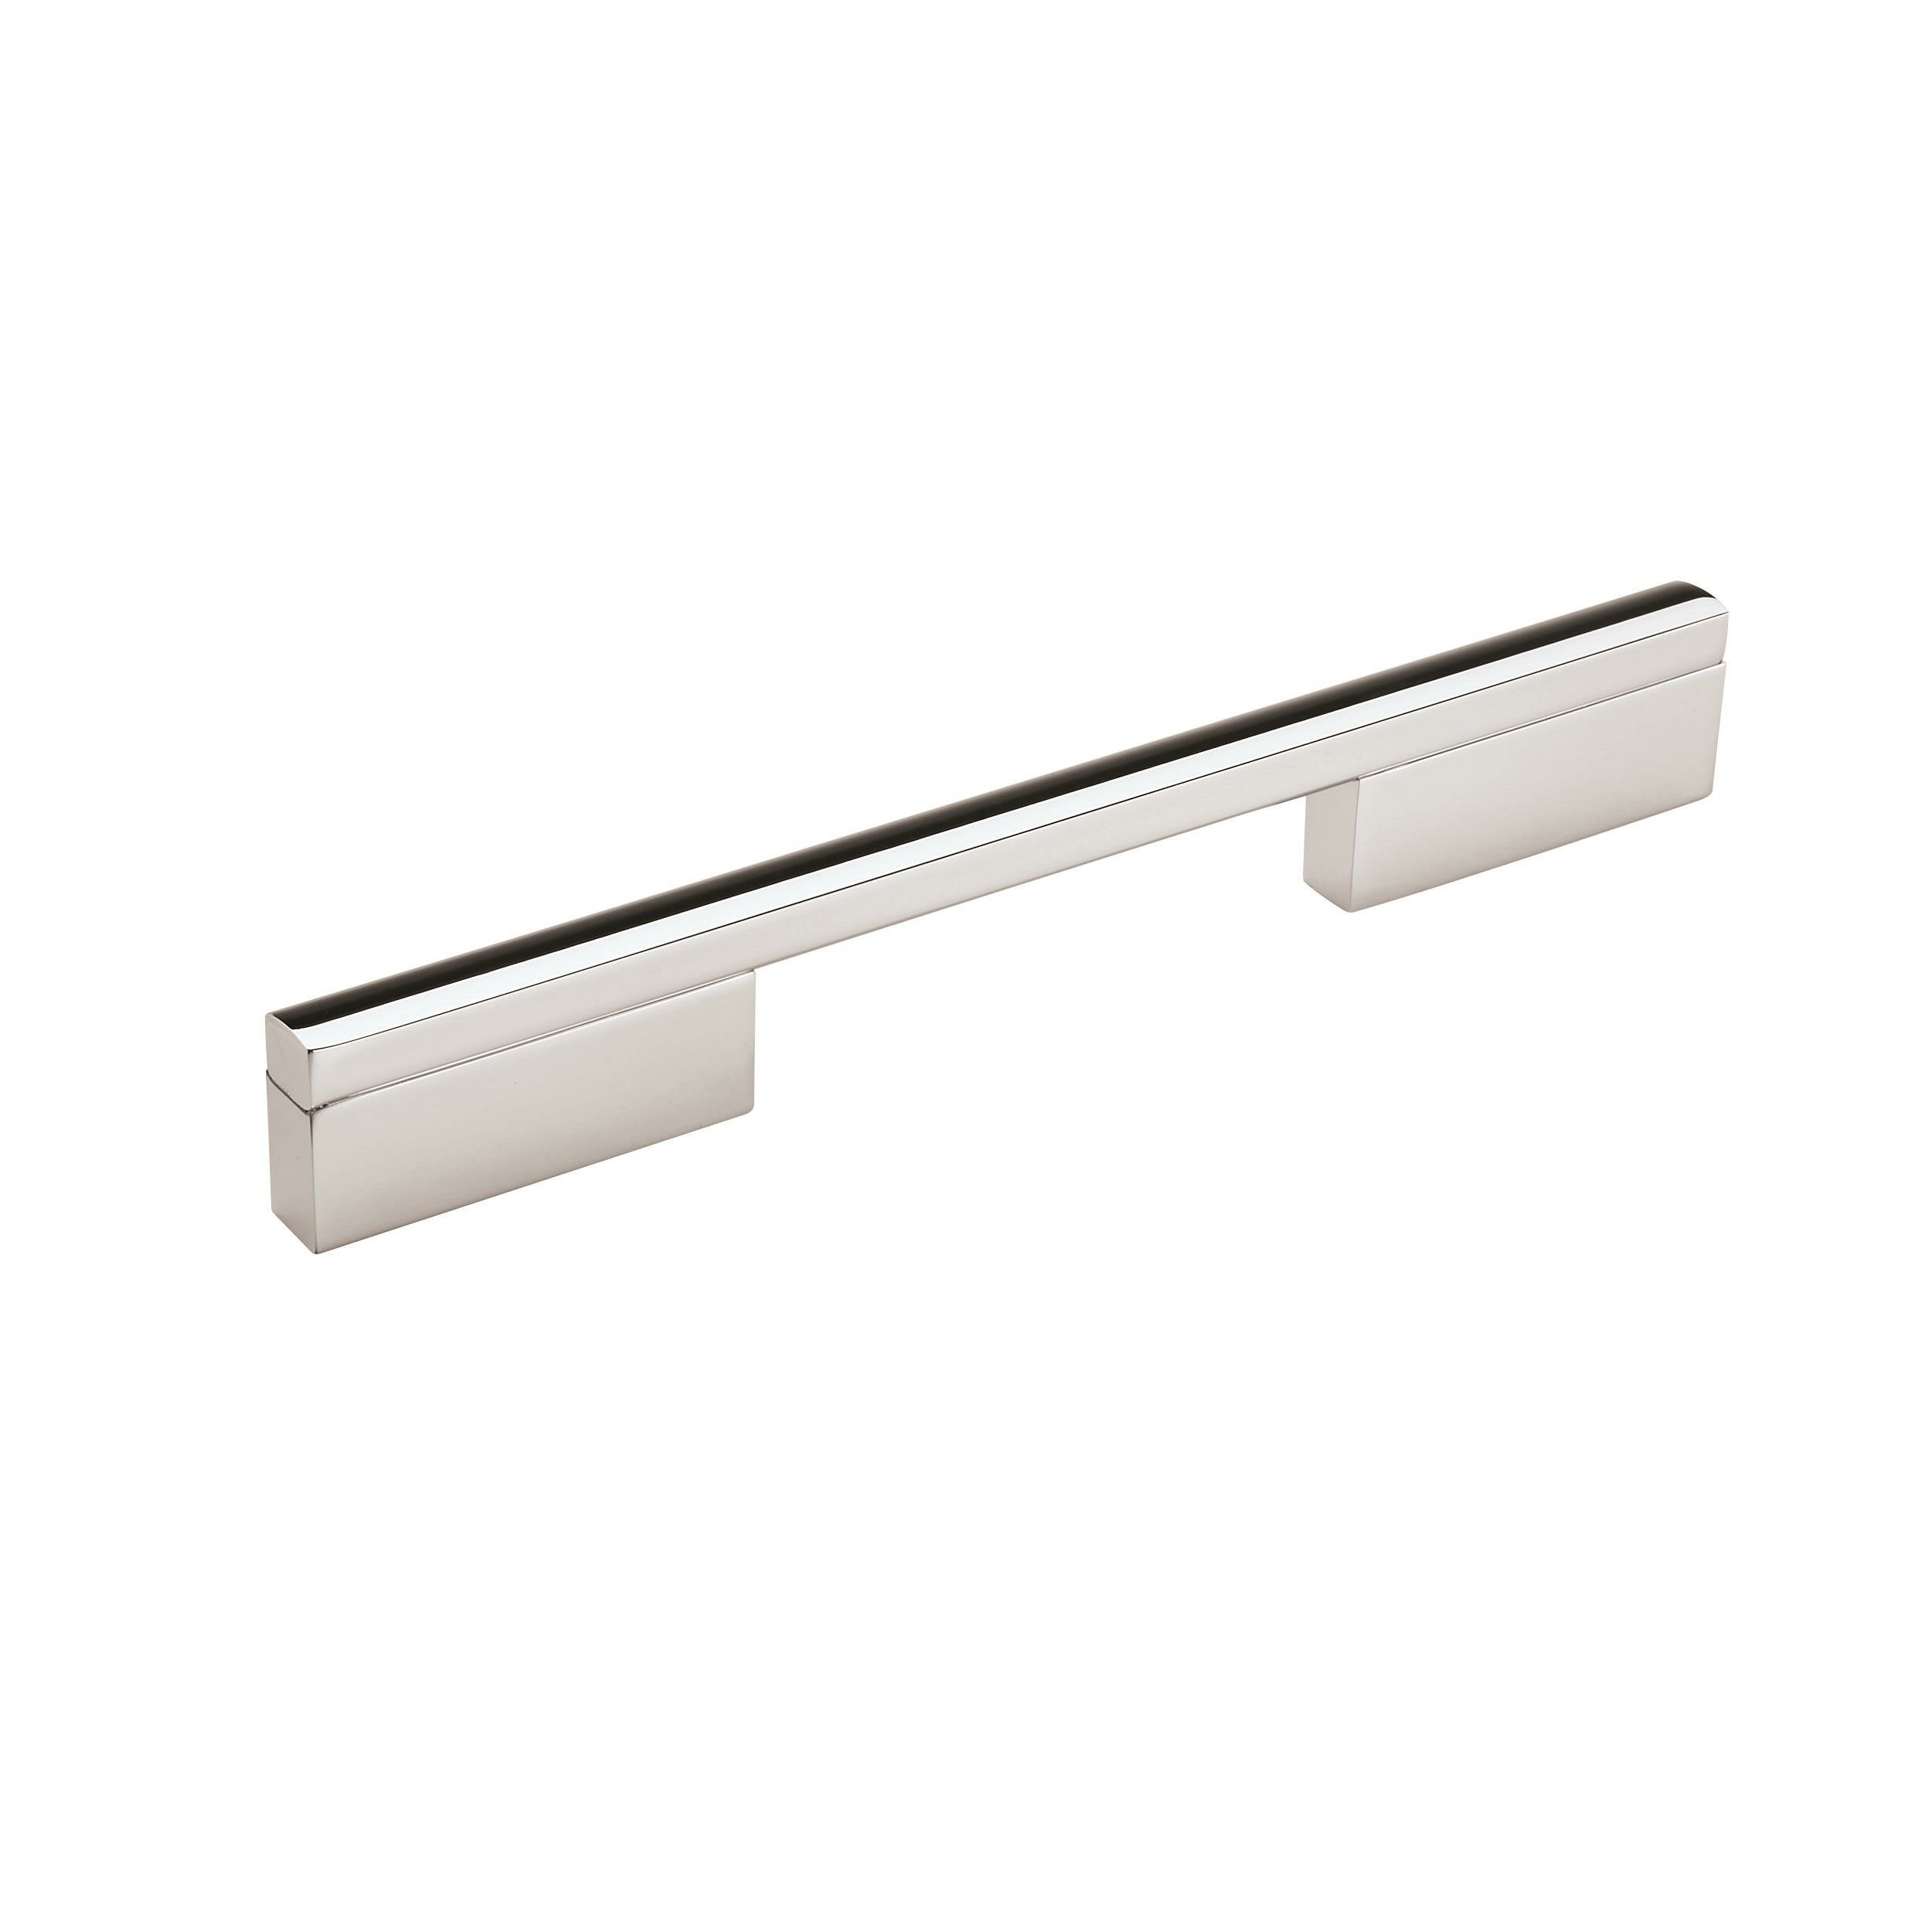 Amerock Separa 6 5 16 In 160 Mm Centre To Centre Black Brushed Nickel Cabinet Pull Wayfair Ca